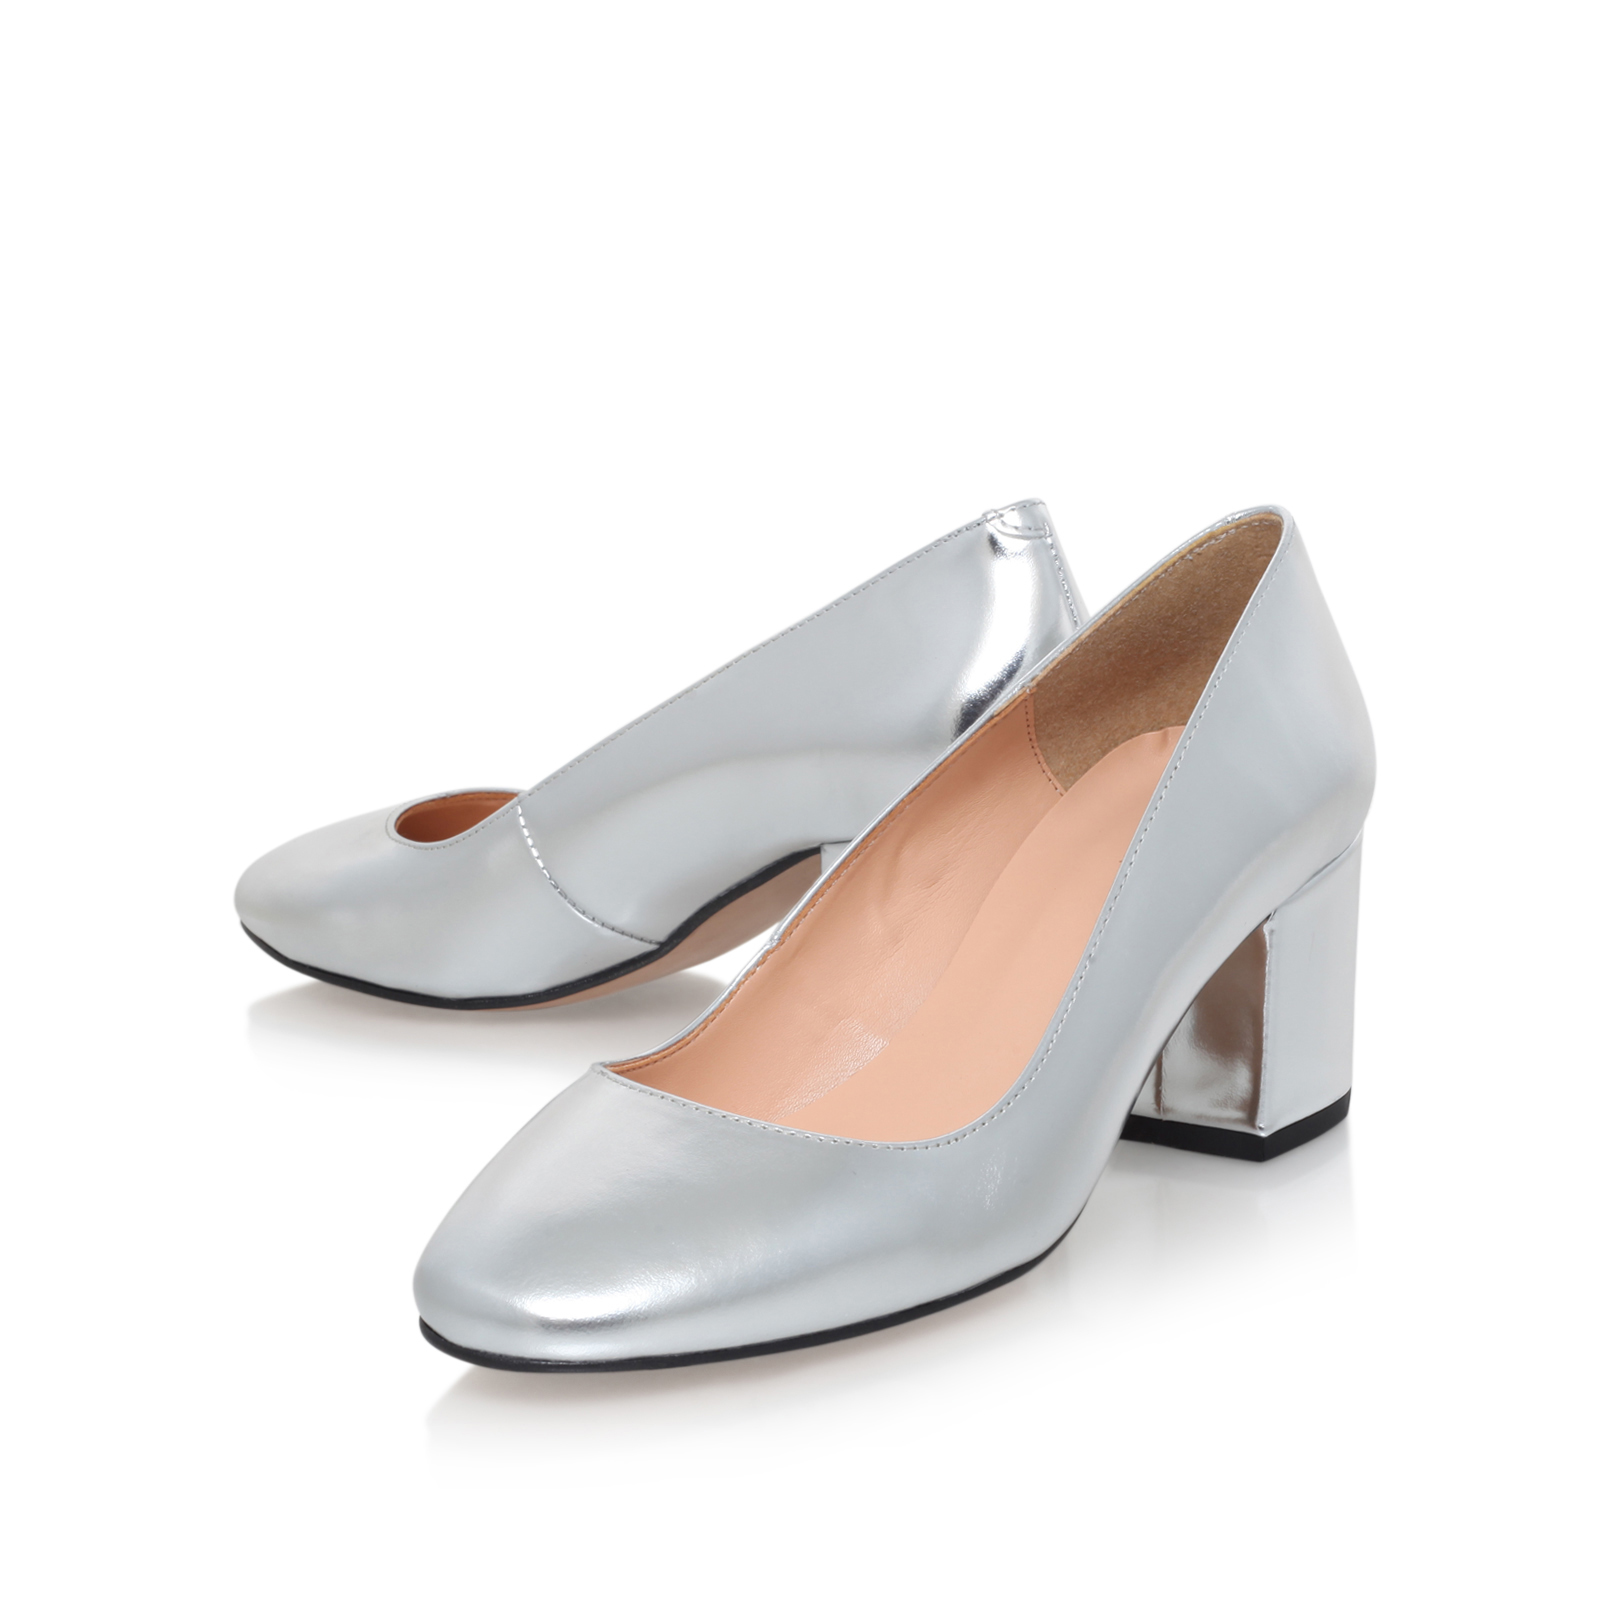 Silver Mid Heel Shoes Next